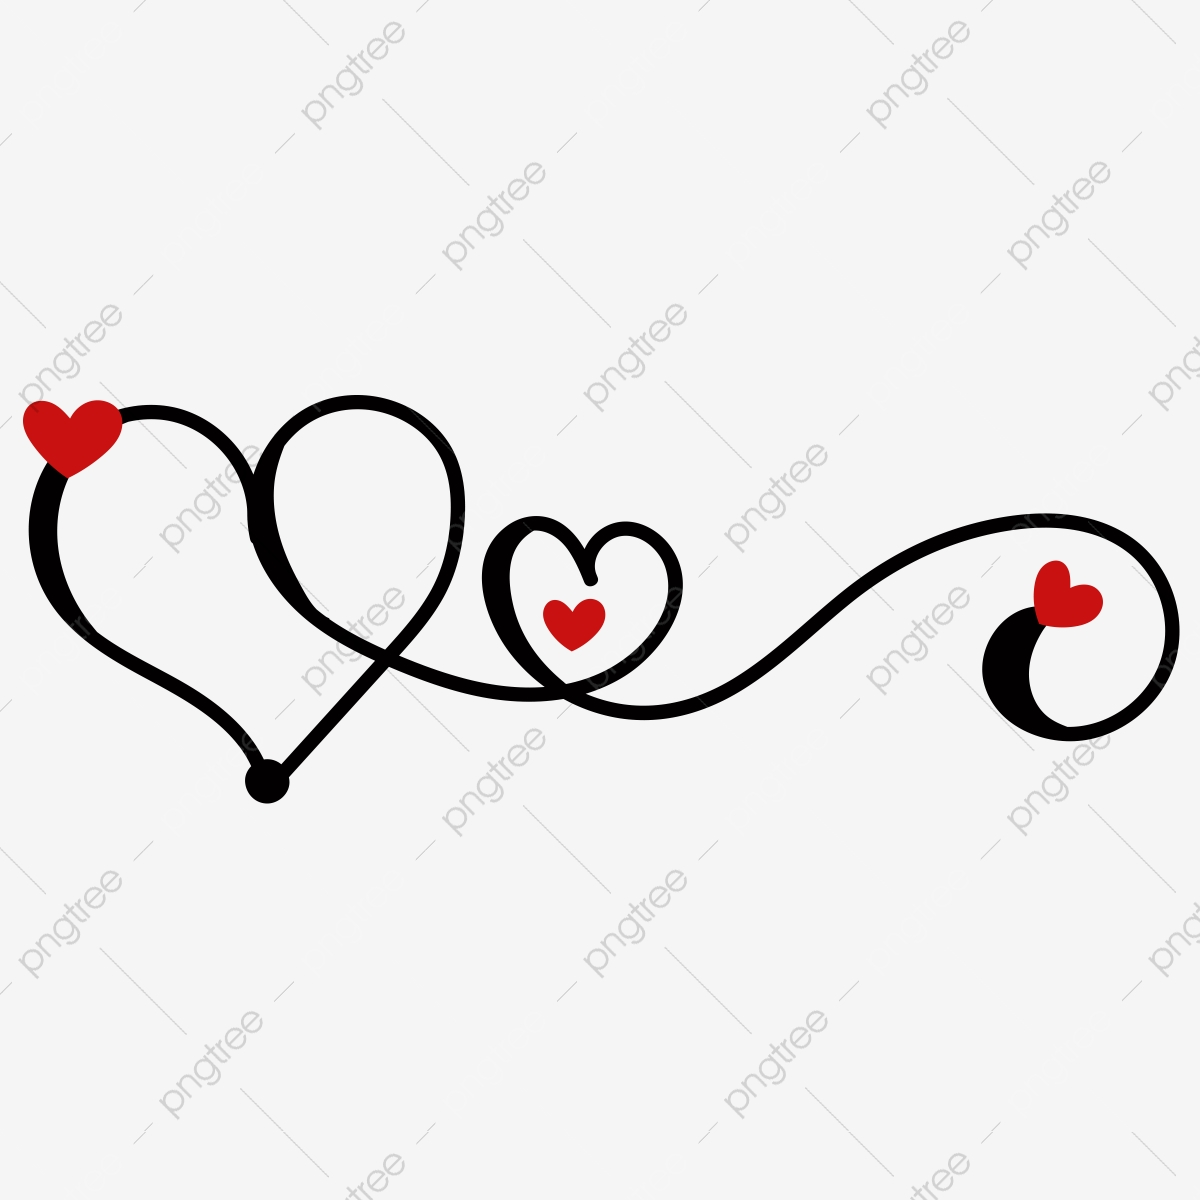 Love The Sign.Love Heart With The Sign Of Infinity Heart Romantic Couple